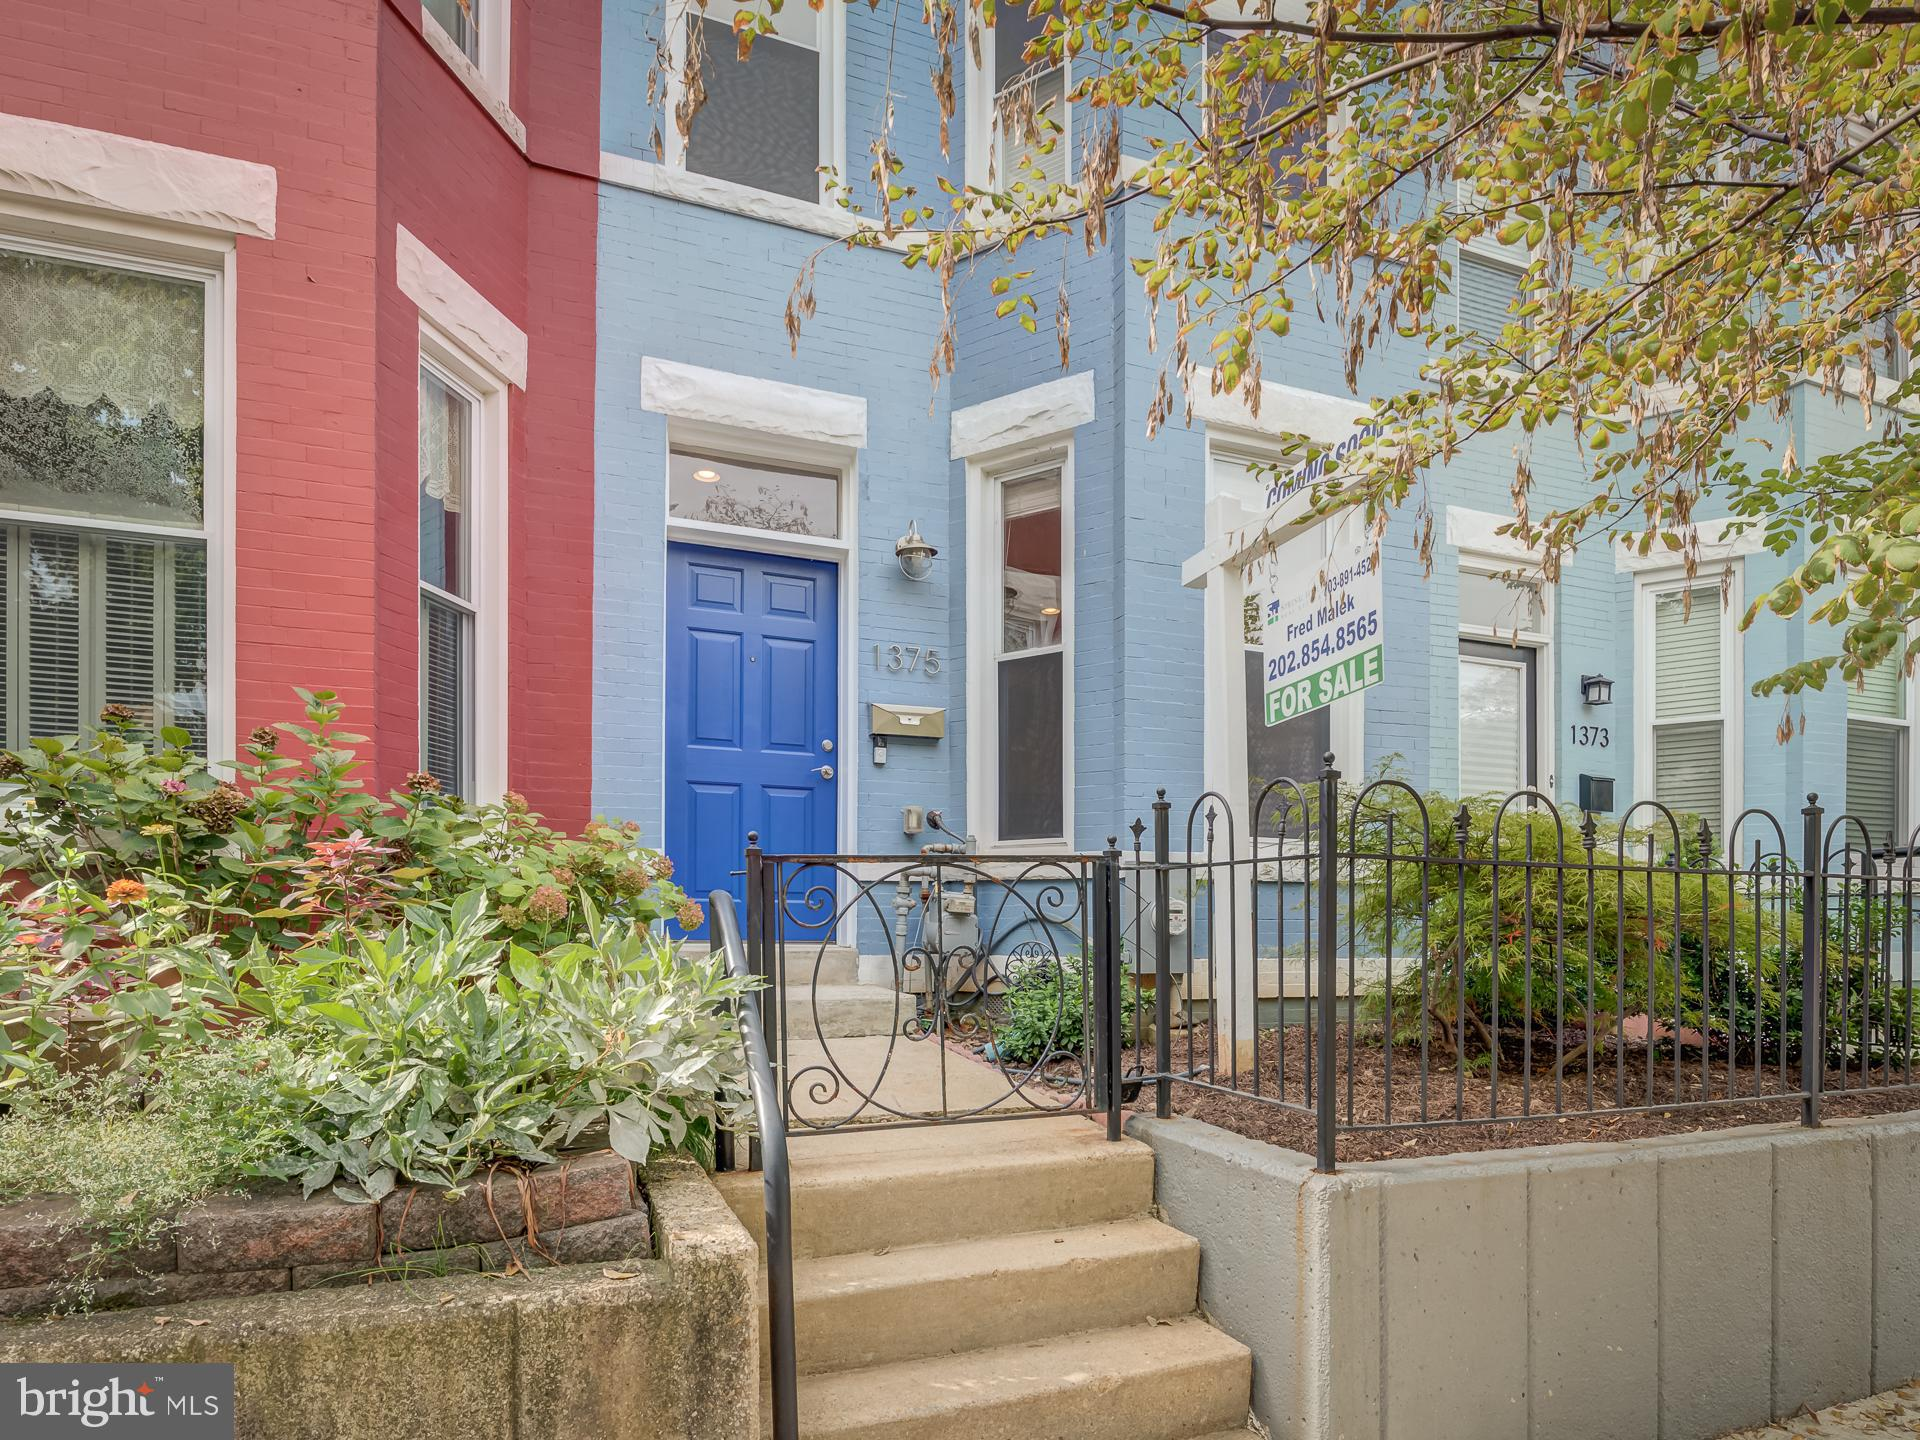 OFFERS DUE TUESDAY SEPT 14TH BY 5PM.   This charming 3-bedroom home on historic Emerald Street has it all!  The home has been beautifully maintained and was thoughtfully renovated with a modern open floor plan, exposed bricks, and new fixtures in 2014, with additional upgrades more recently.  A two-level bump-out provides for 3 uniquely spacious bedrooms and 2 full bathrooms upstairs, as well as a powder room and separate laundry area on the main level.    Updated plumbing, mechanical and electrical systems. Other features include: Ring doorbell and Ring floodlight camera installed in the rear; Ecobee Smart Thermostat with extra temperature sensor in the Master Bathroom; updated alarm system serviced by Vintage Security; UV clean air filter; and solar panels.   Excellent location.  The home is on a quiet and quaint block on the east side of the lovely Capitol Hill neighborhood, with easy access to parks, trails, Kingman Island, and the National Arboretum.  Many hip dining establishments nearby in the H Street Corridor area, Barracks Row/Eastern Market, and Union Market.  Also conveniently located to Union Station and a number of different grocery stores.  Don't miss this Emerald Street gem!